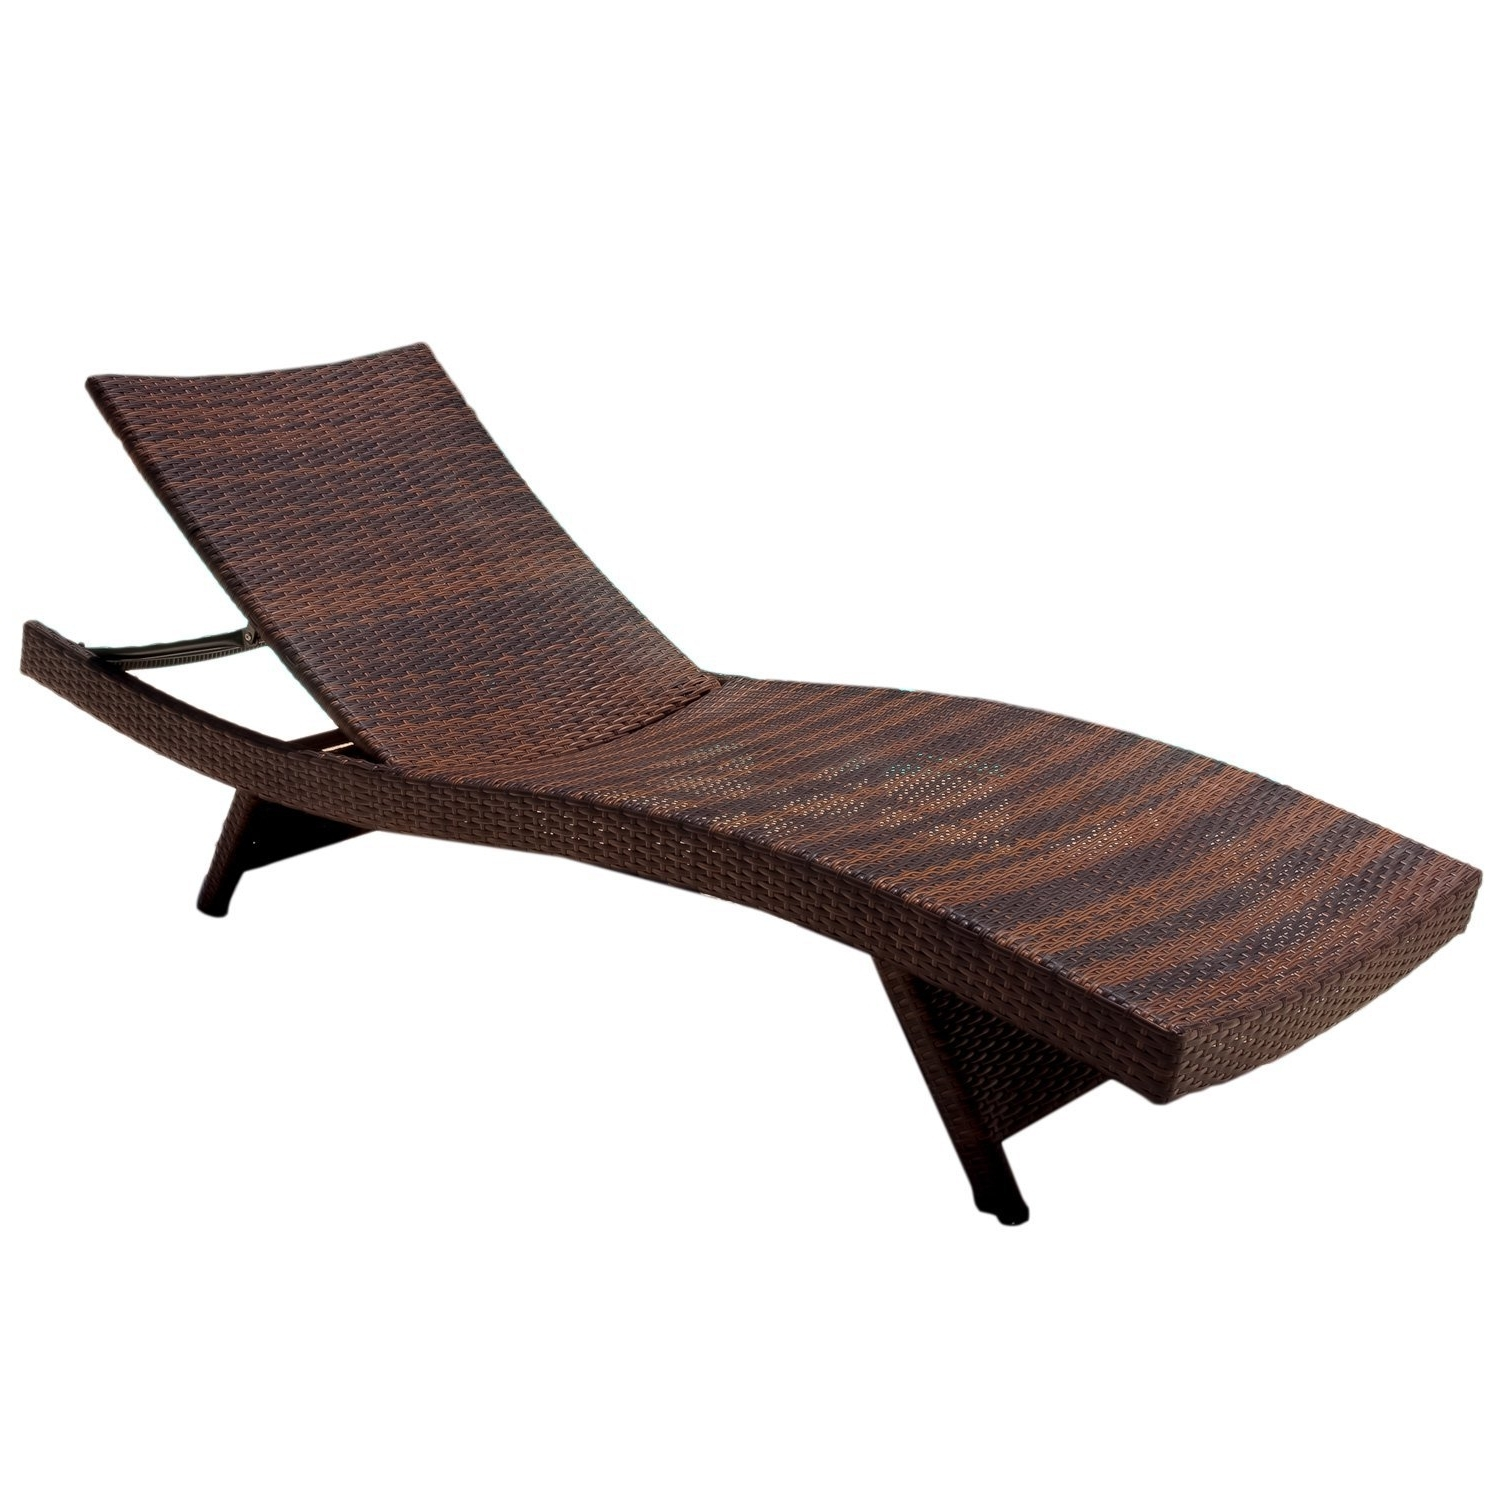 Amazon : Best Selling Outdoor Adjustable Wicker Lounge, Brown With Trendy Contemporary Outdoor Chaise Lounge Chairs (View 13 of 15)